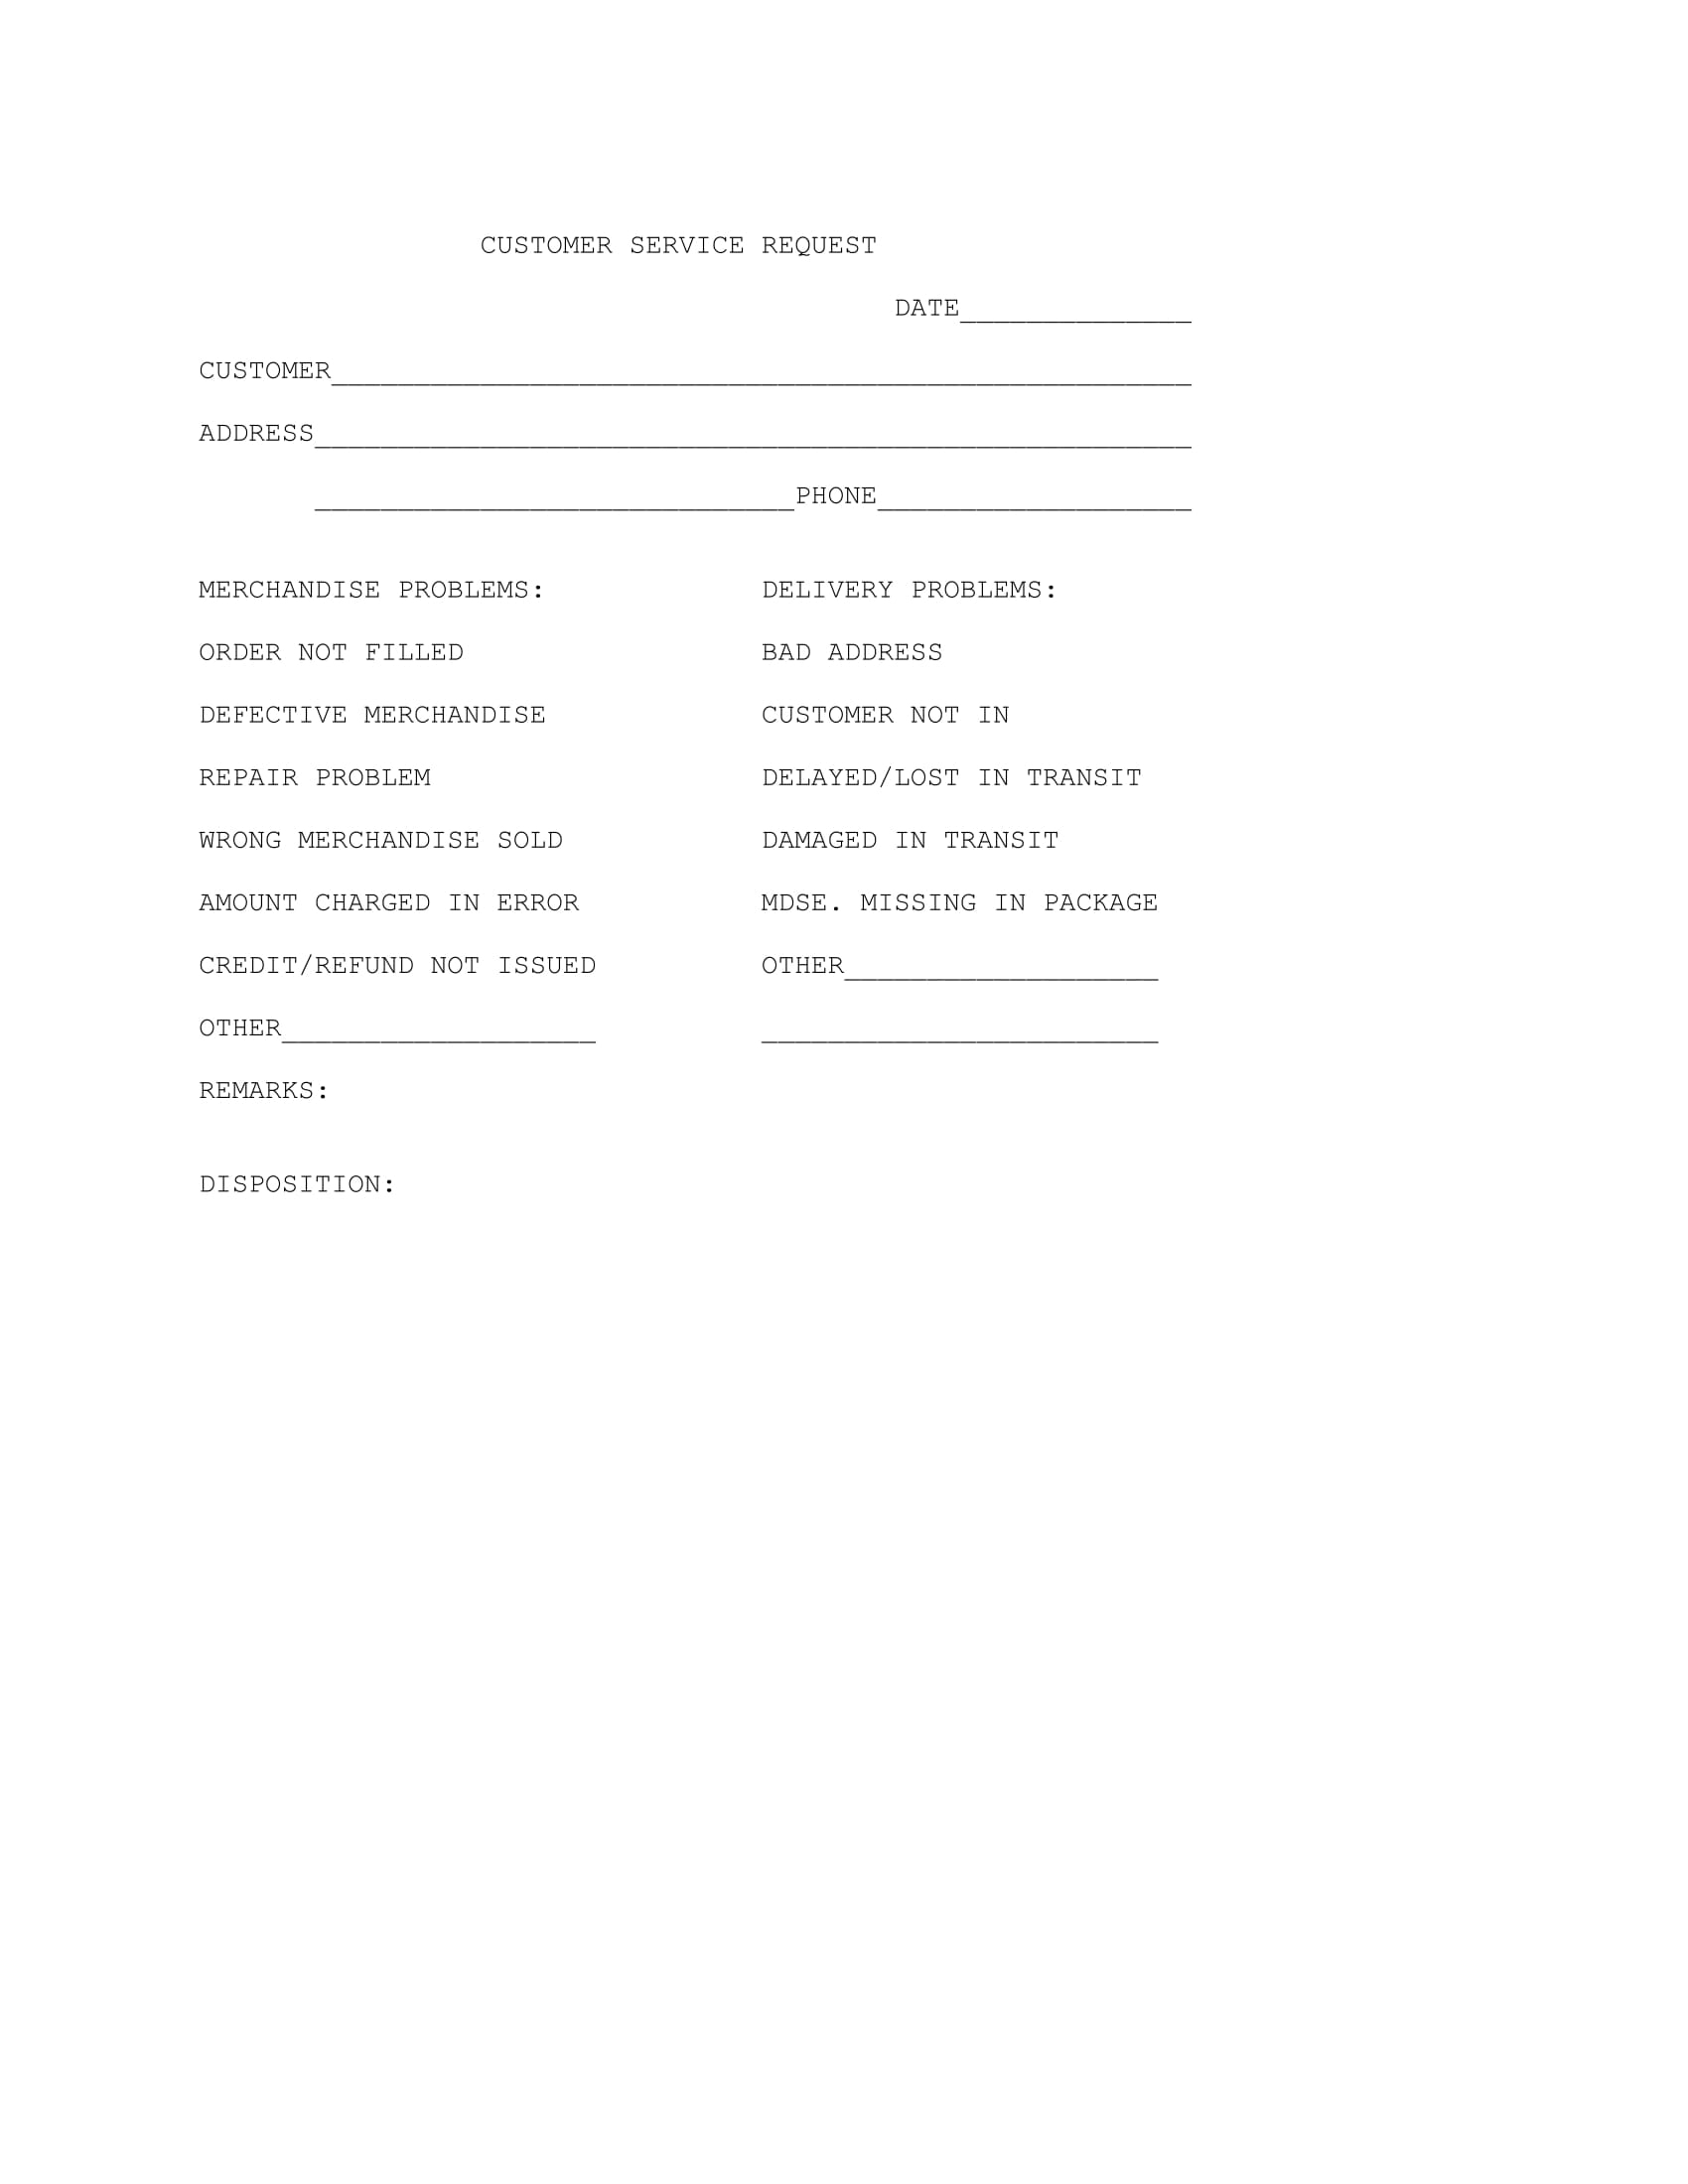 basic customer service request form 1